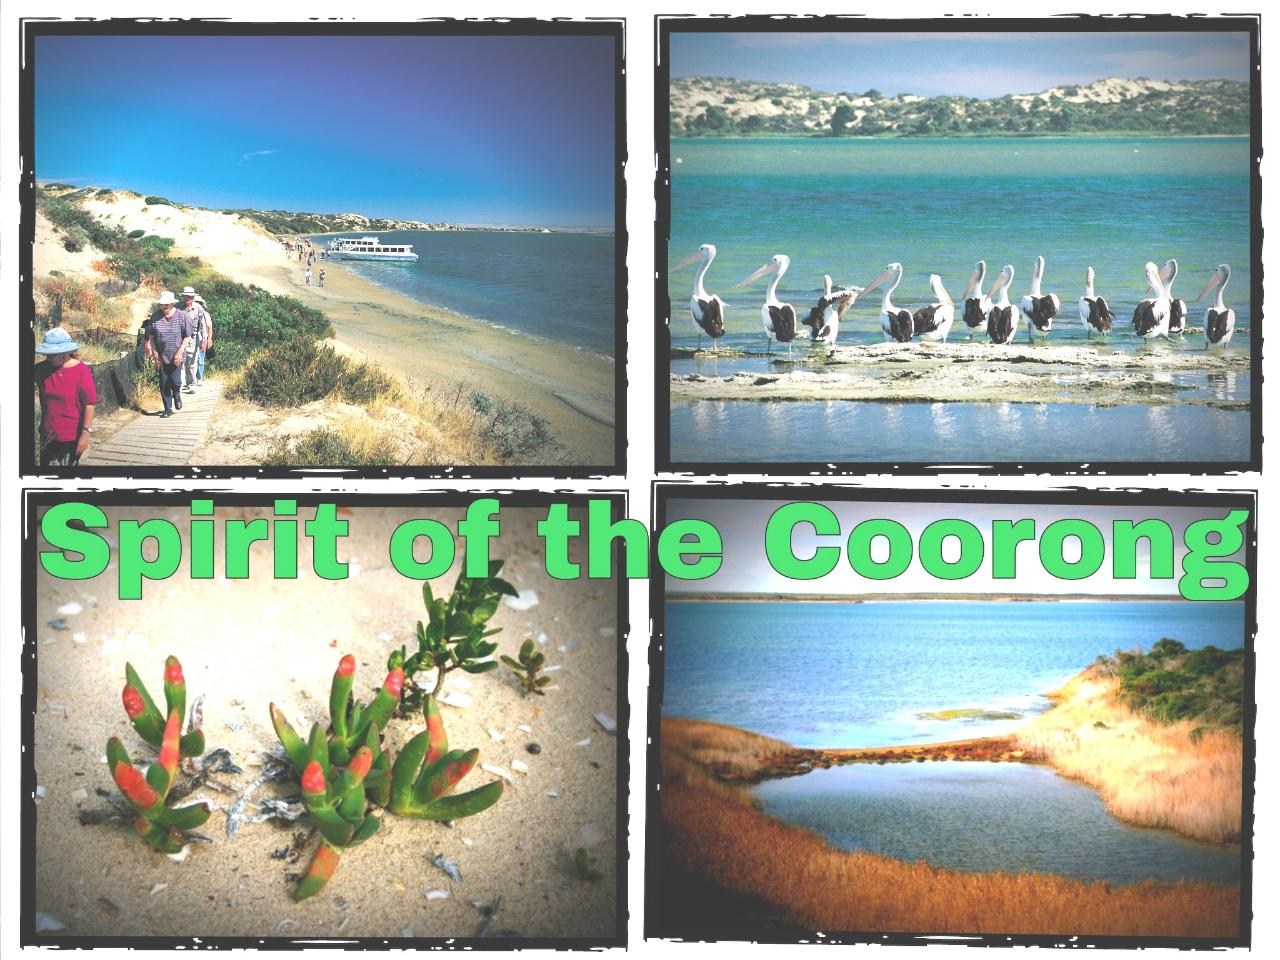 Spirit of Coorong Discovery Cruise  (Storm Boy Country) & Fleurieu Peninsula Tour - EX Adelaide, Glenelg & Hahndorf